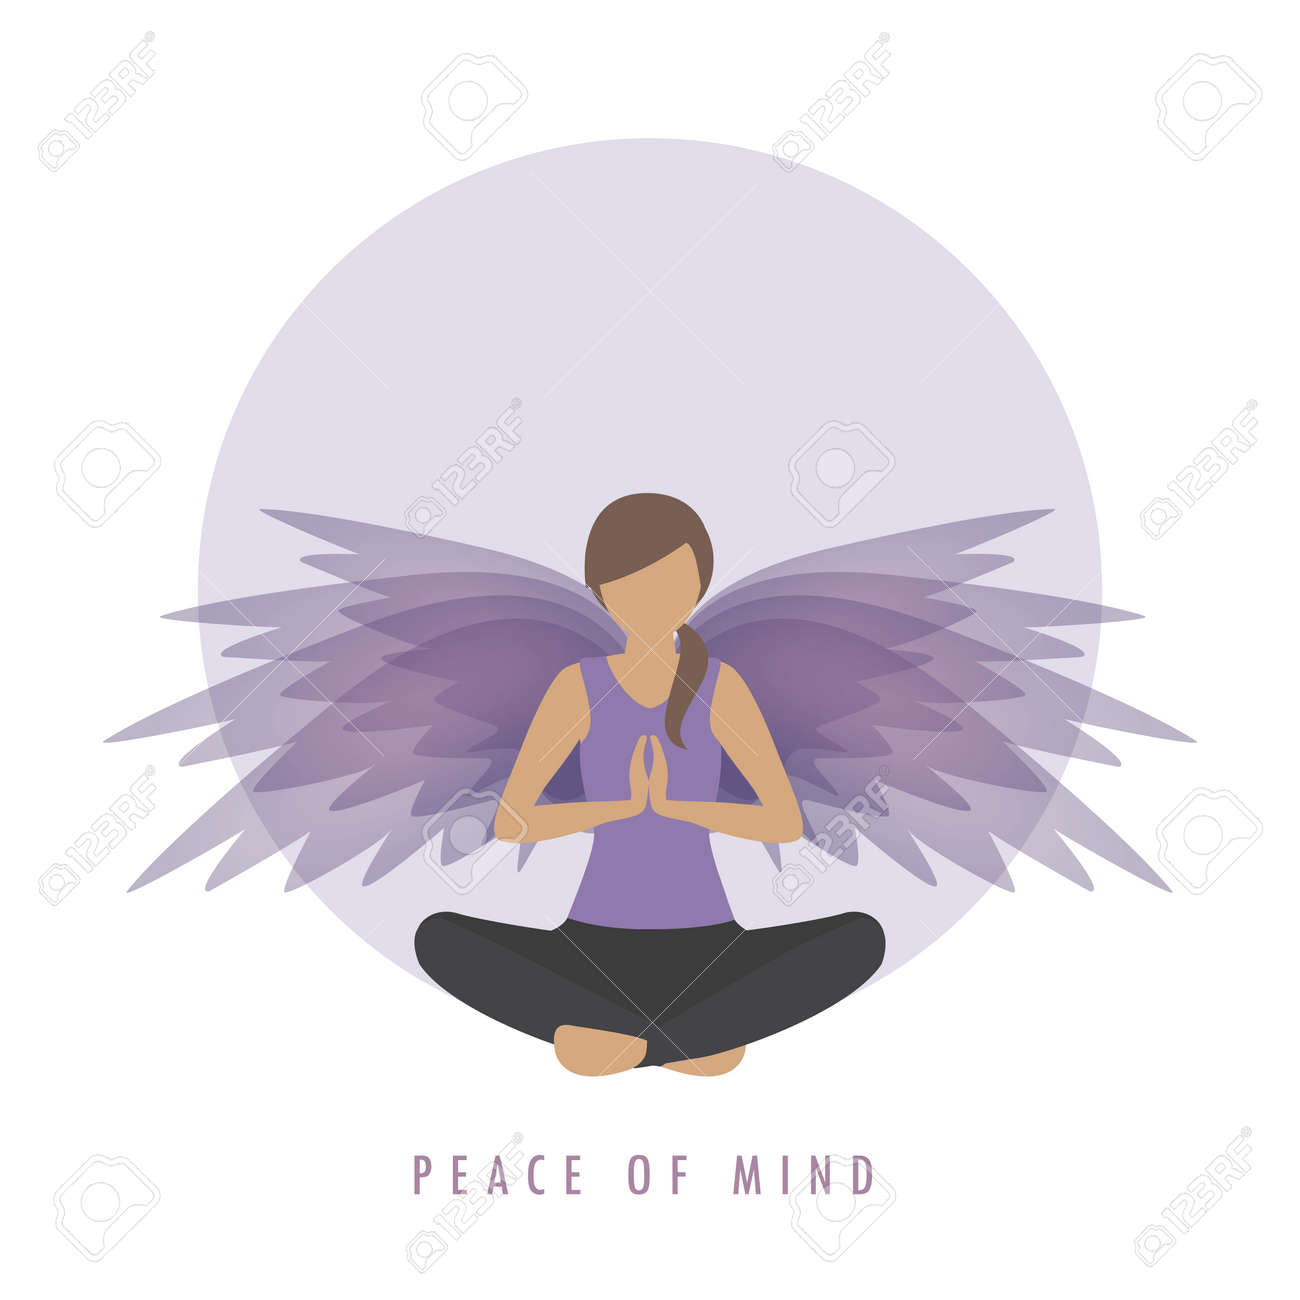 peace of mind girl in meditation pose with wings - 167505111